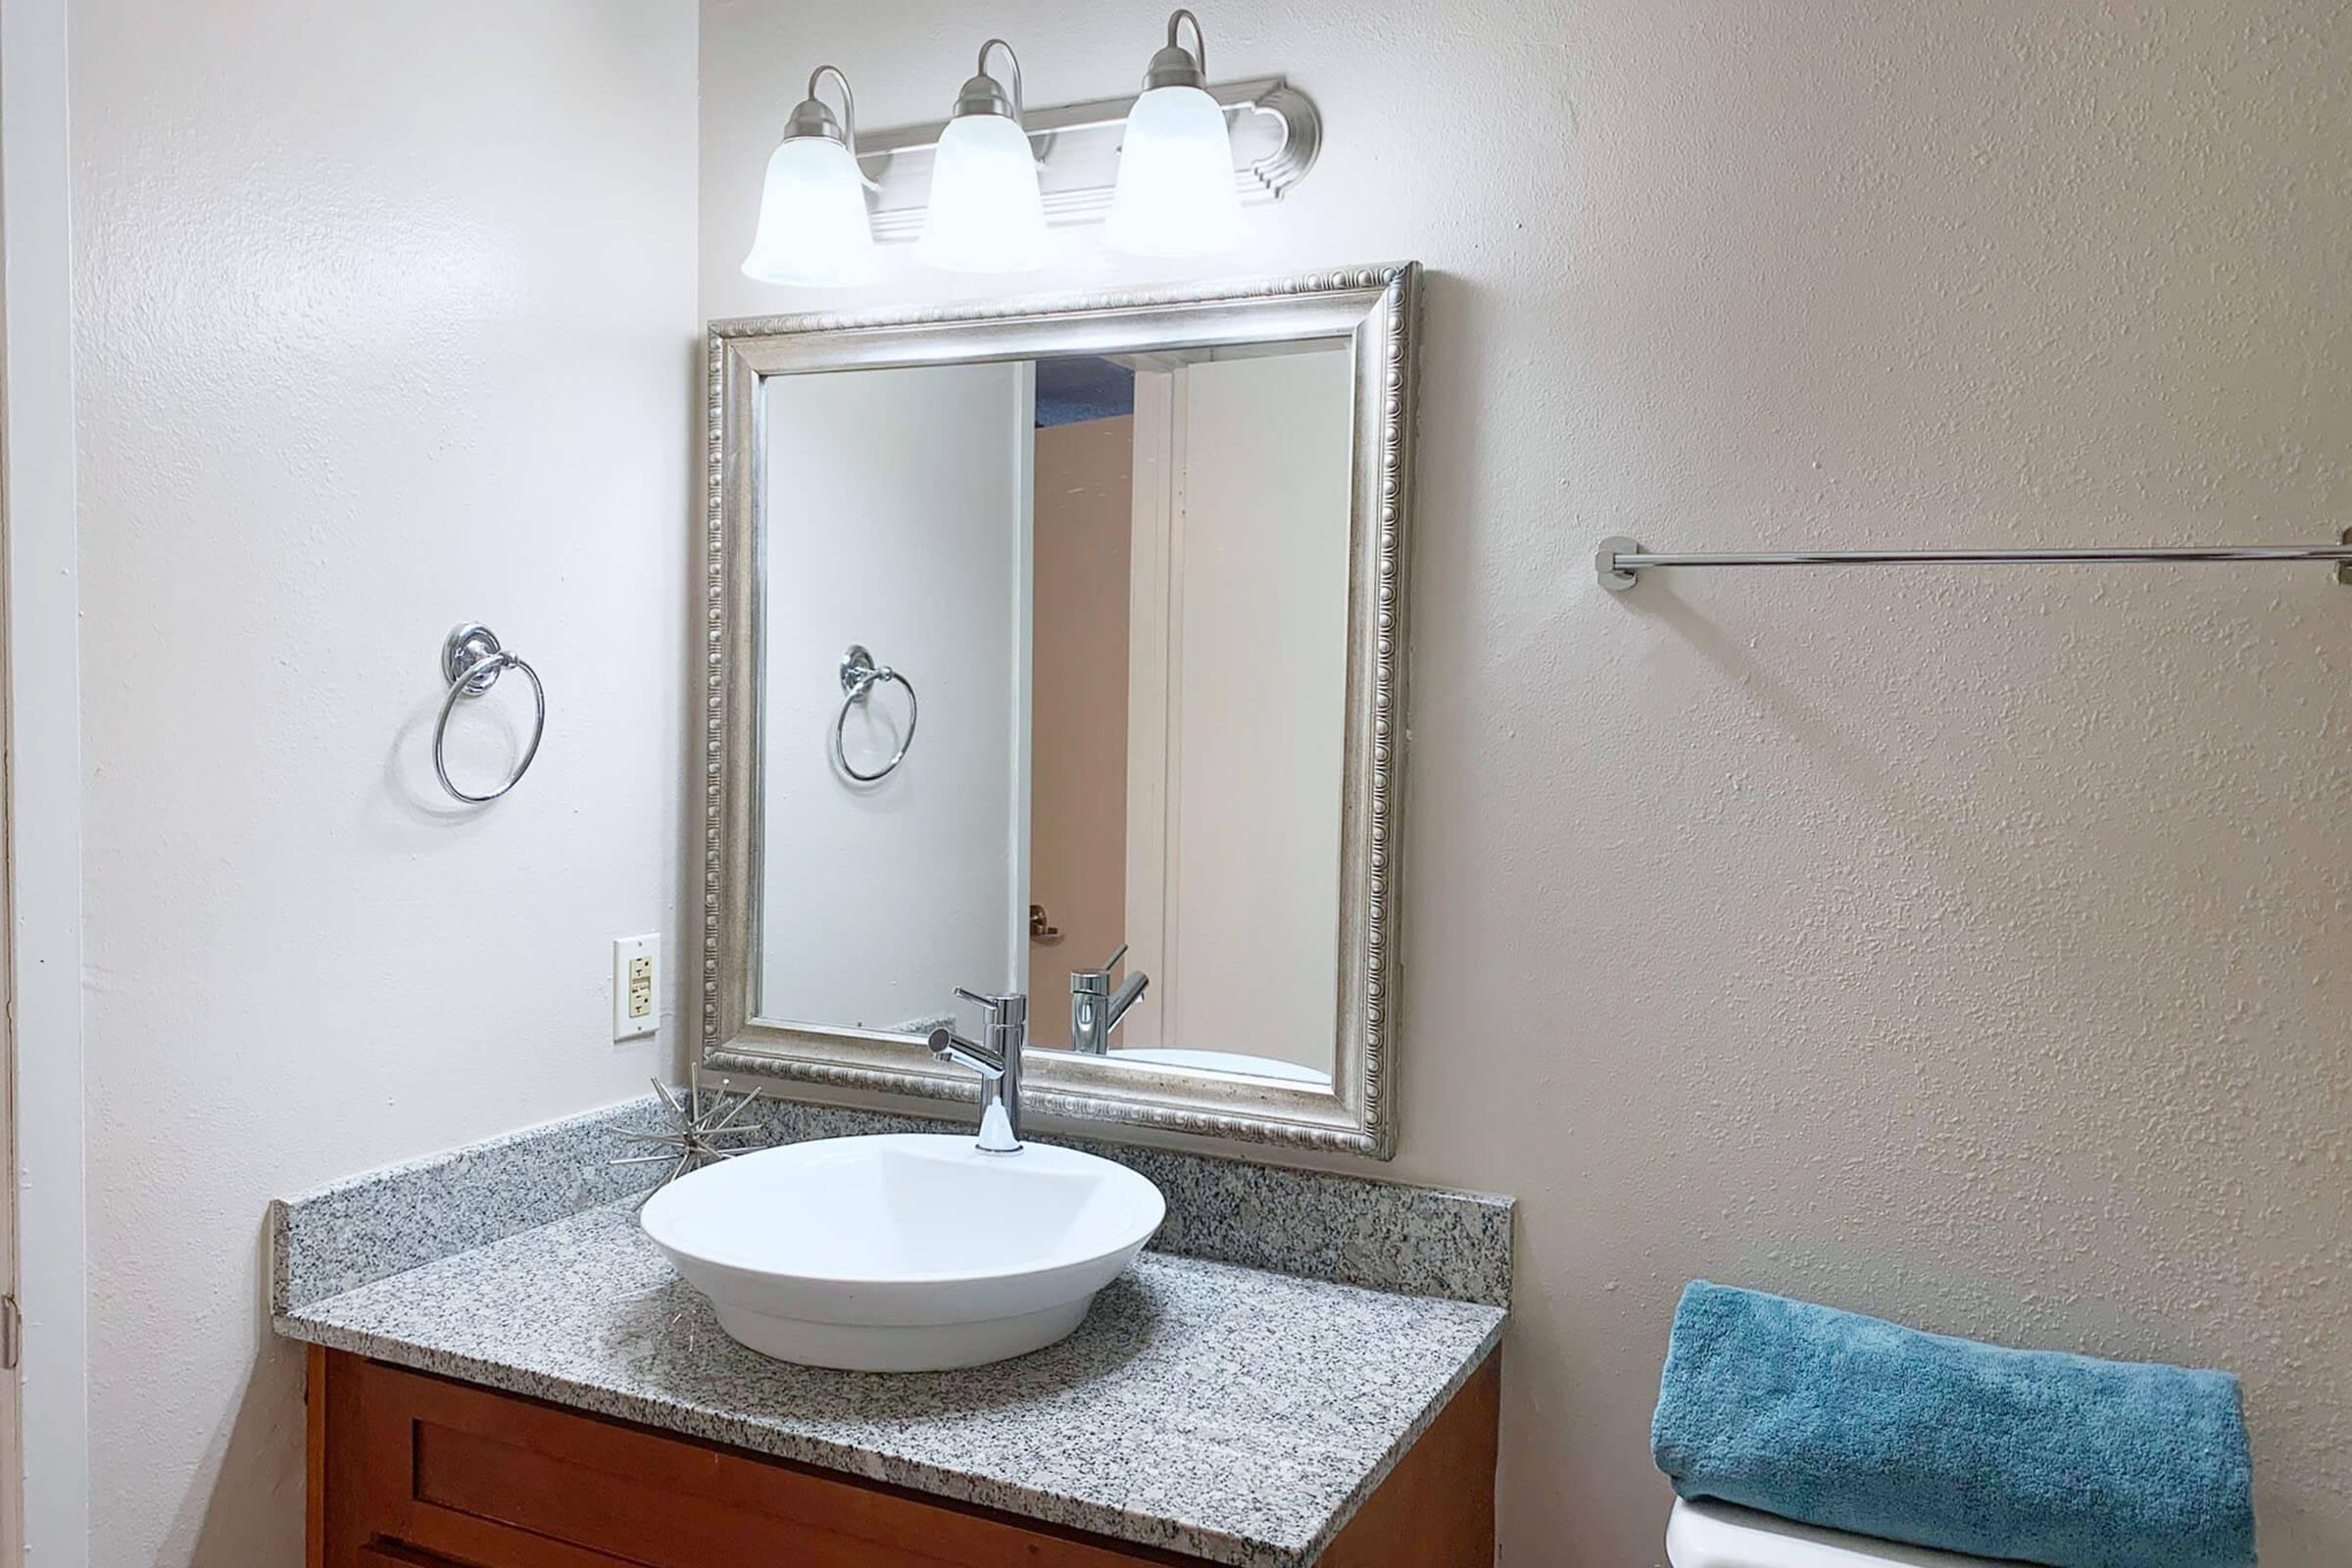 a room with a sink and a mirror